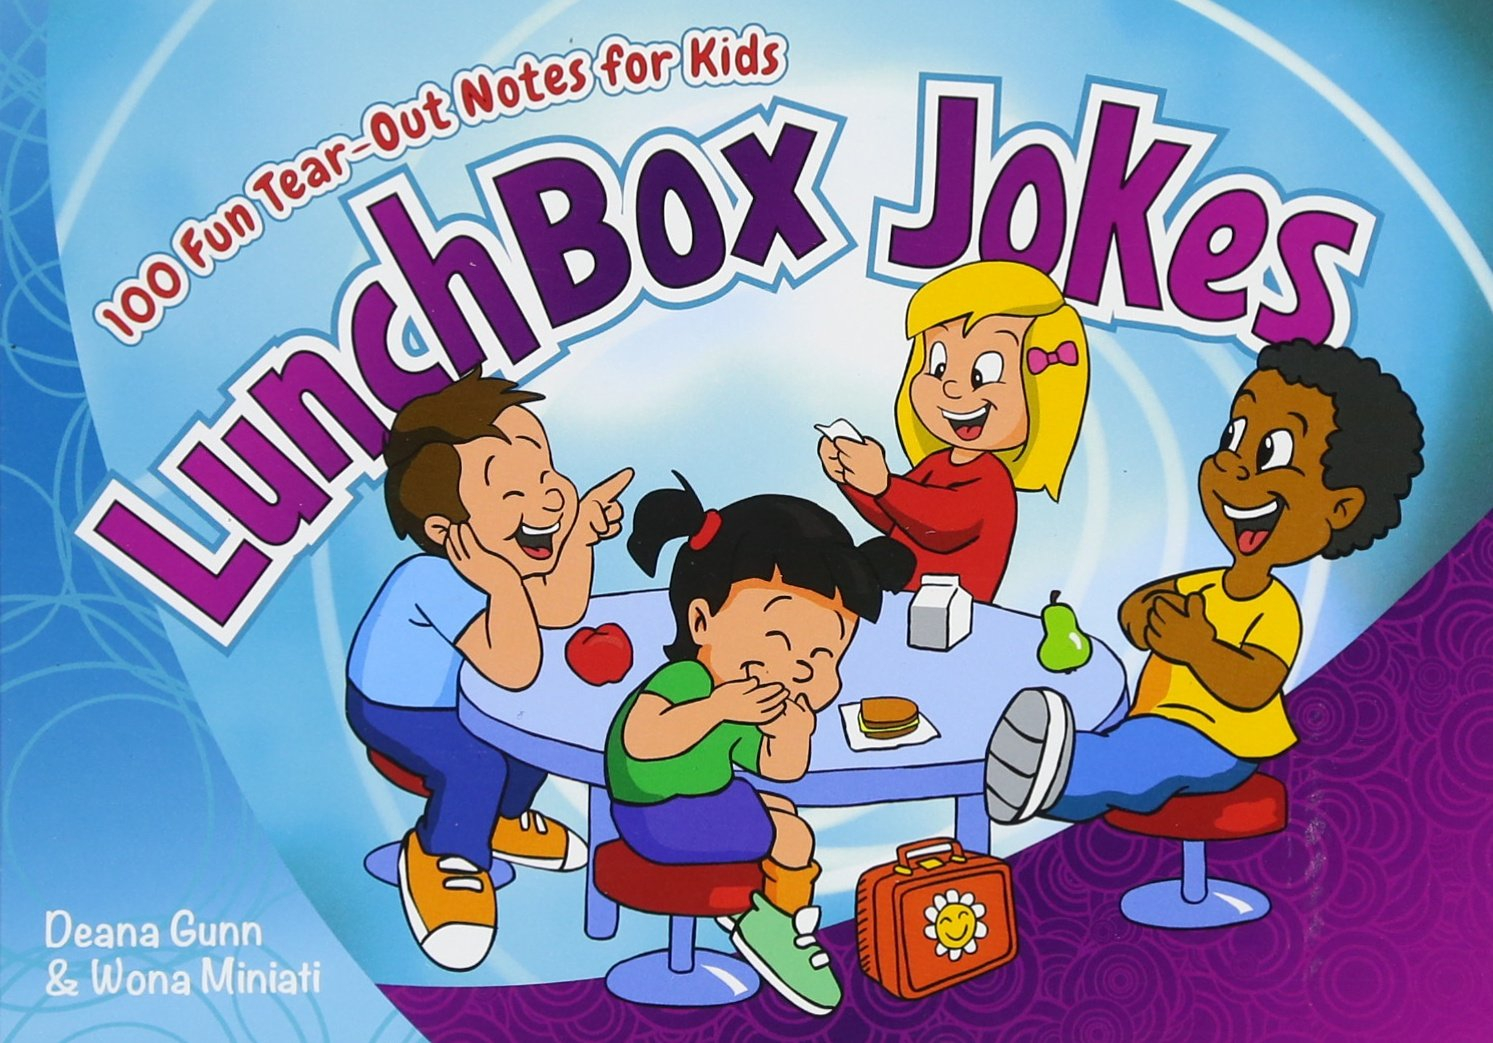 Lunchbox Jokes Tear Out Notes Kids product image